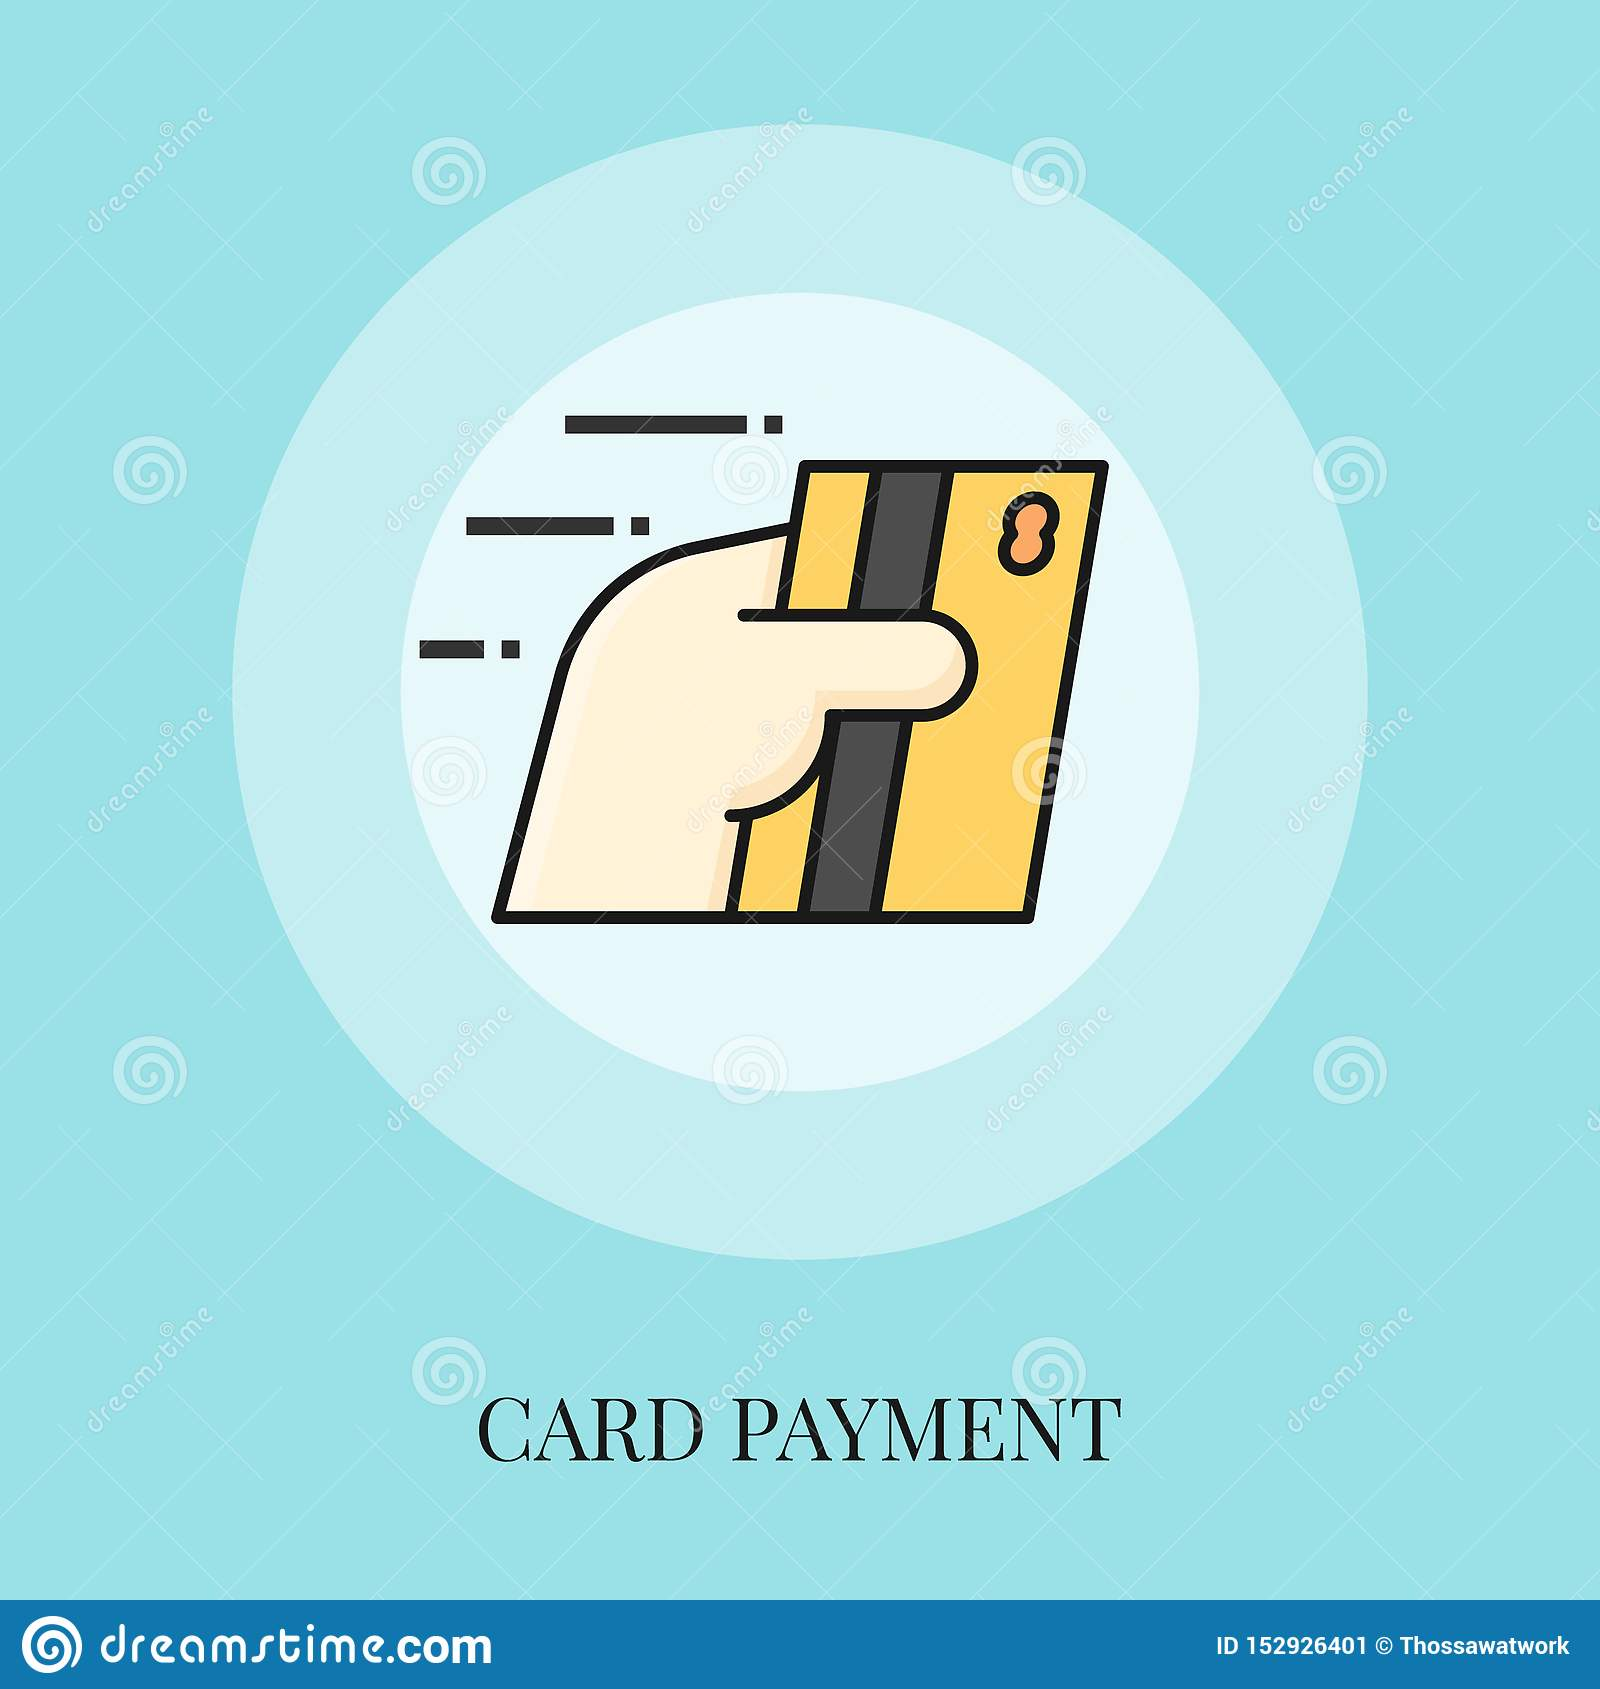 Hand holding card, Card payment concept